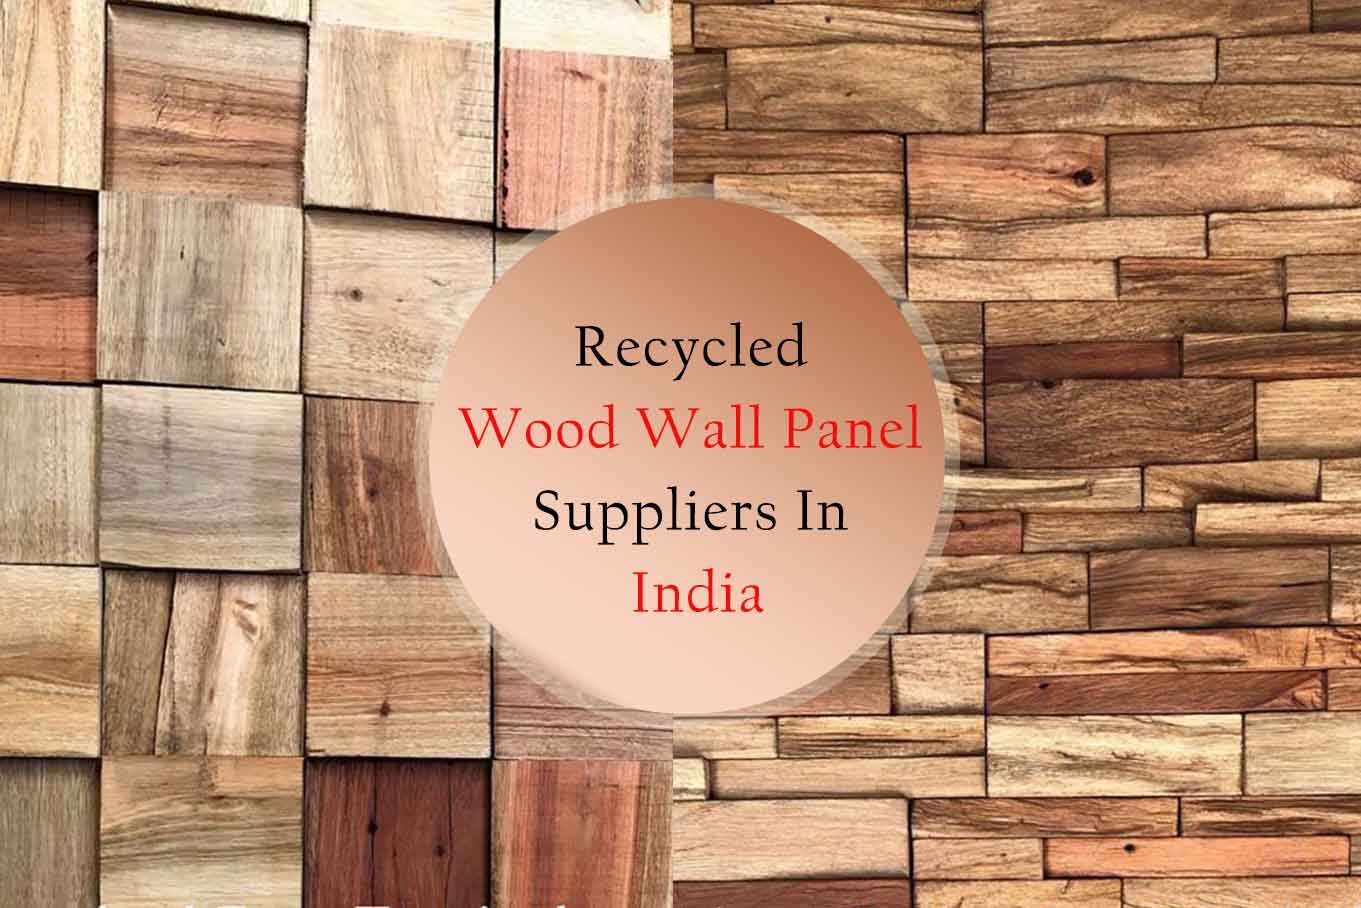 wood-wall-panel-suppliers-in-Indonesia